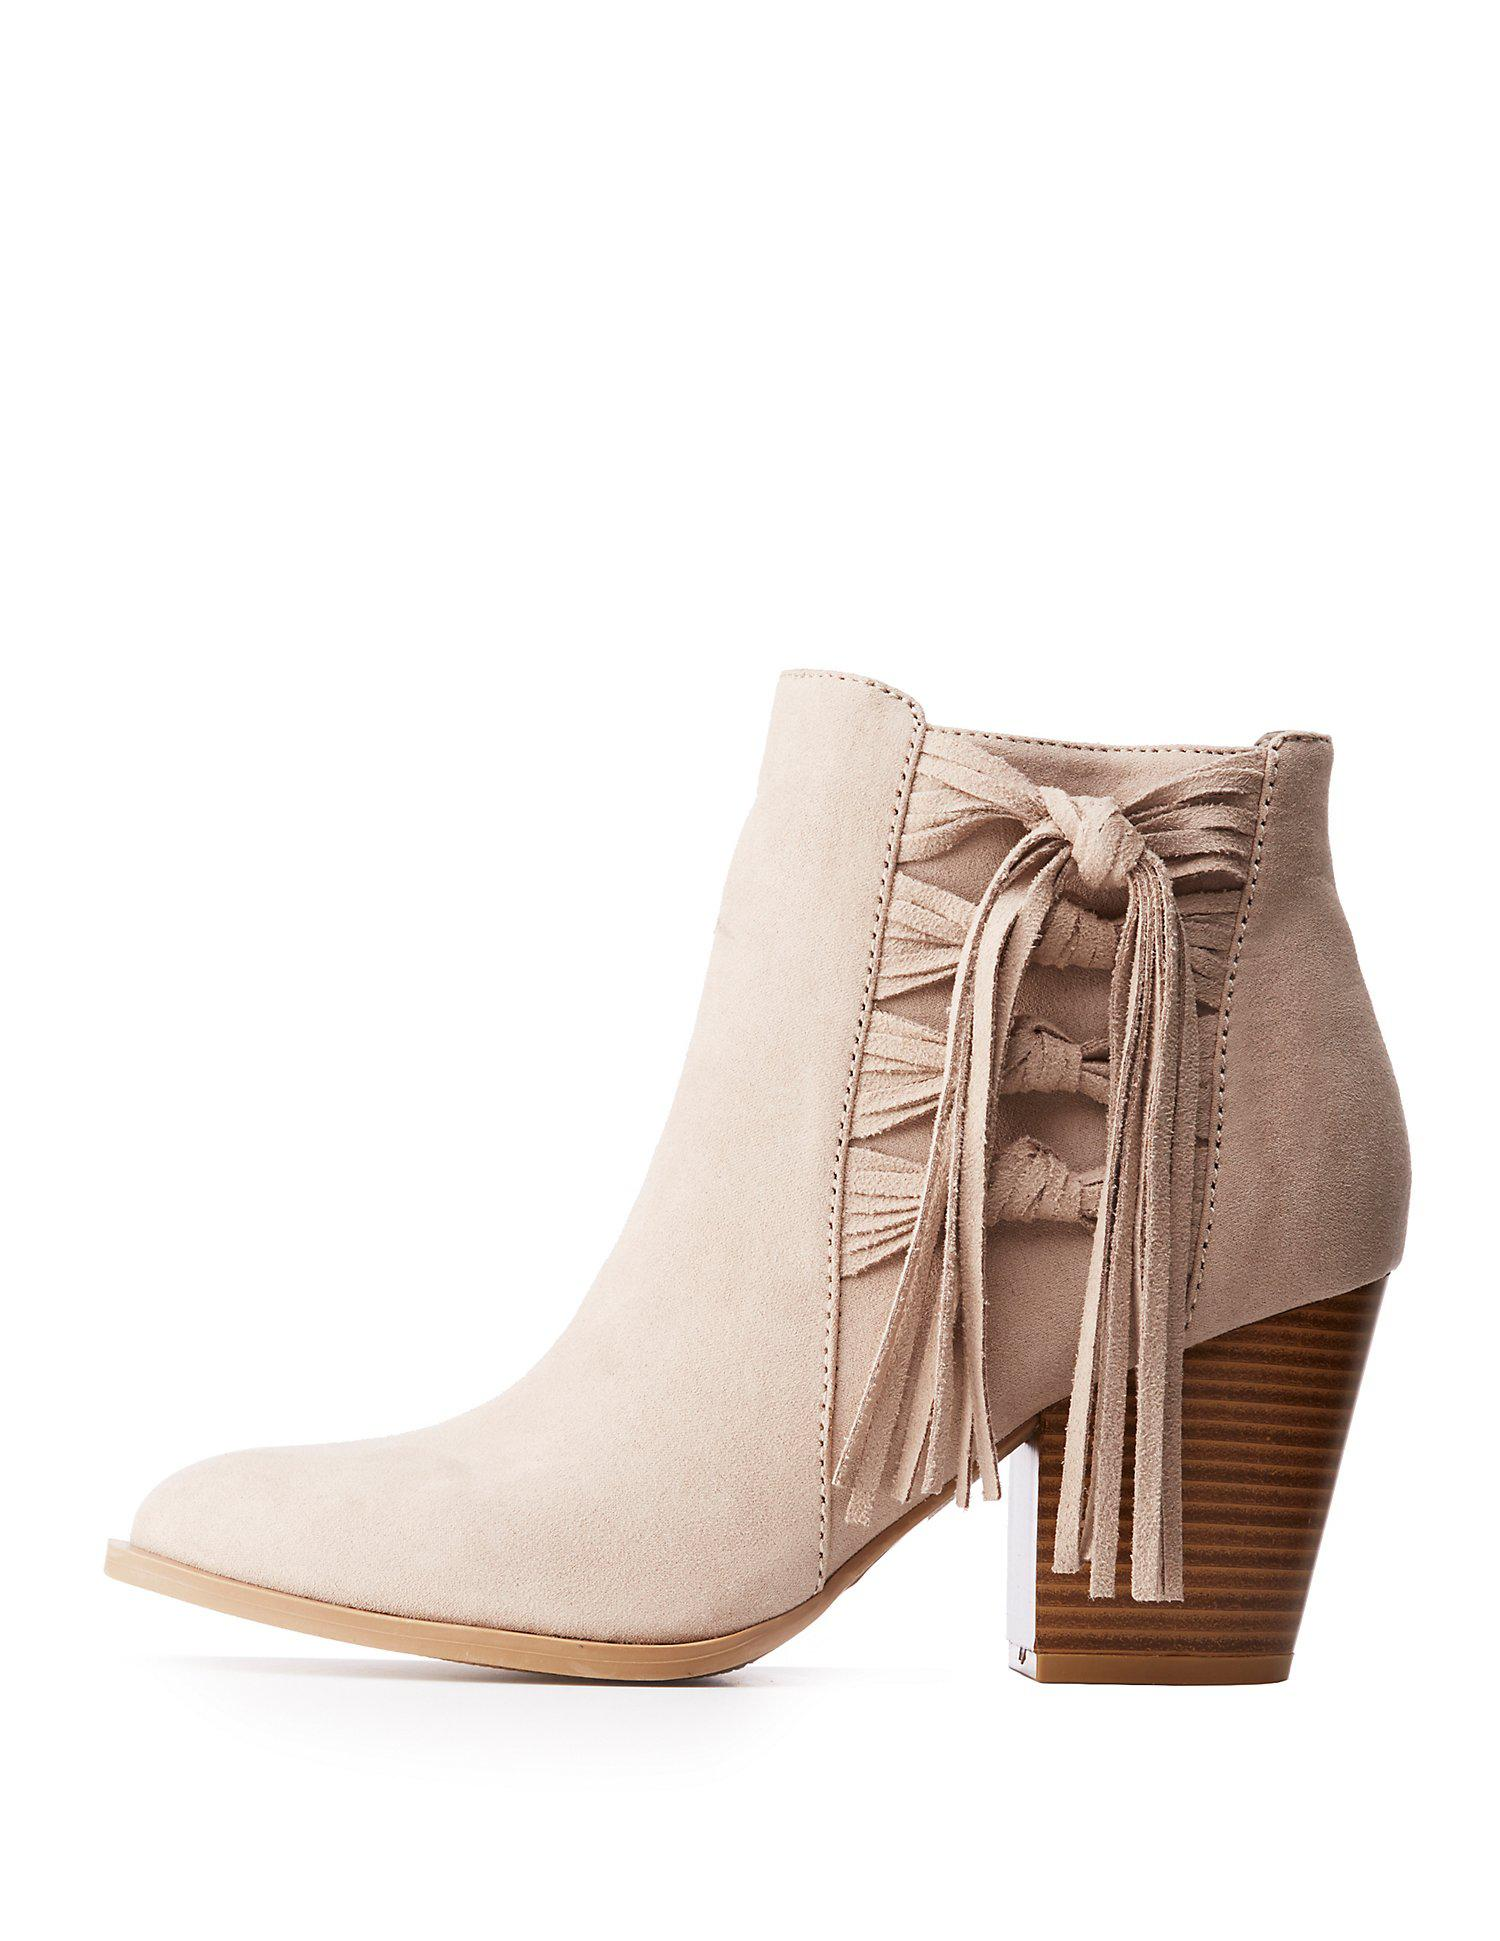 47b6a100a7a3 Lyst - Charlotte Russe Fringe Accented Ankle Booties